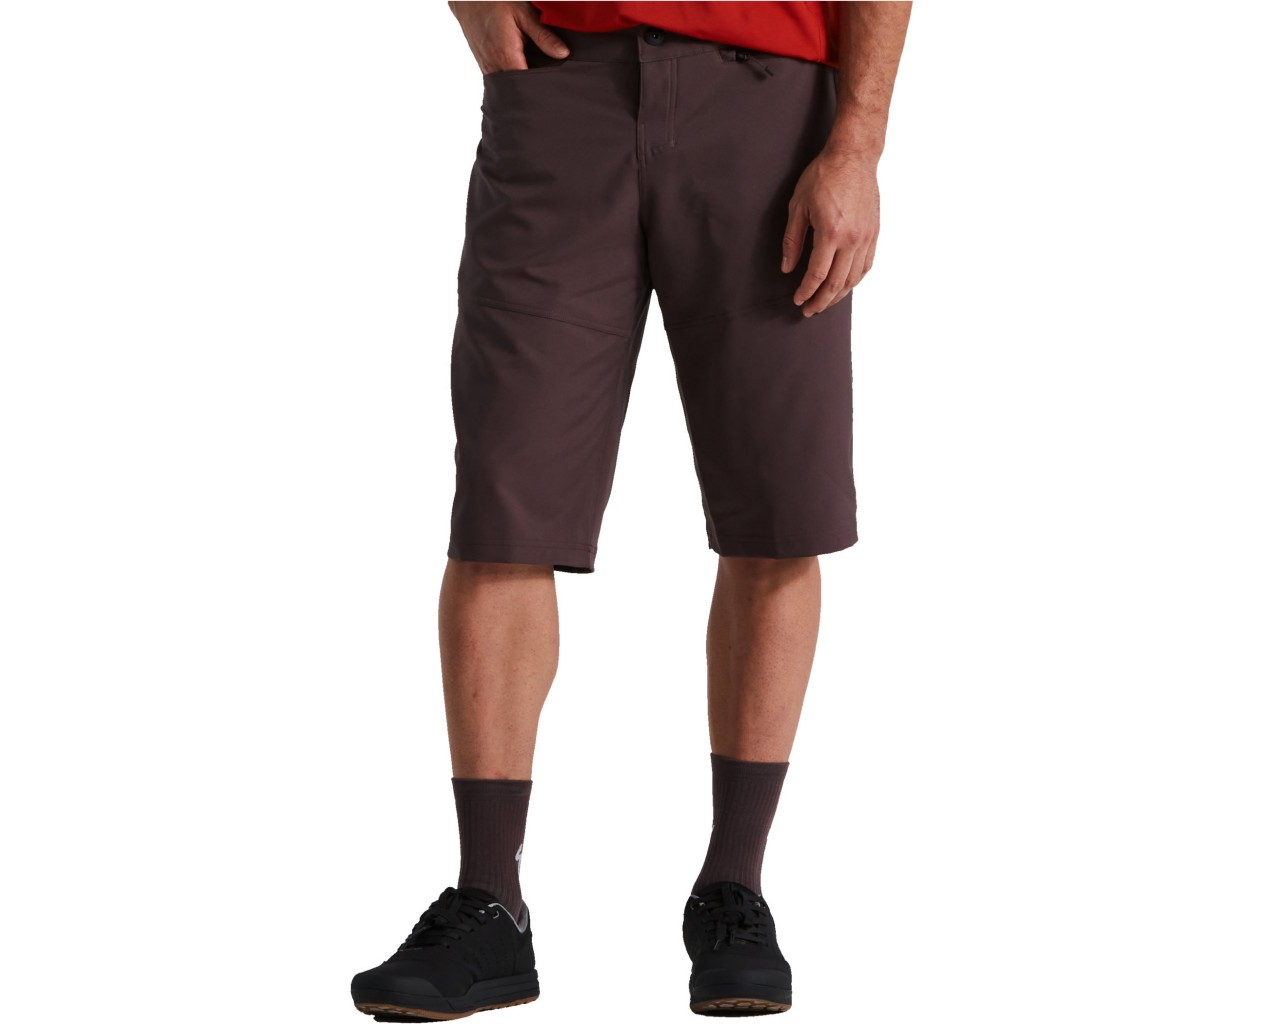 Specialized Trail Shorts with Liner | cast umber